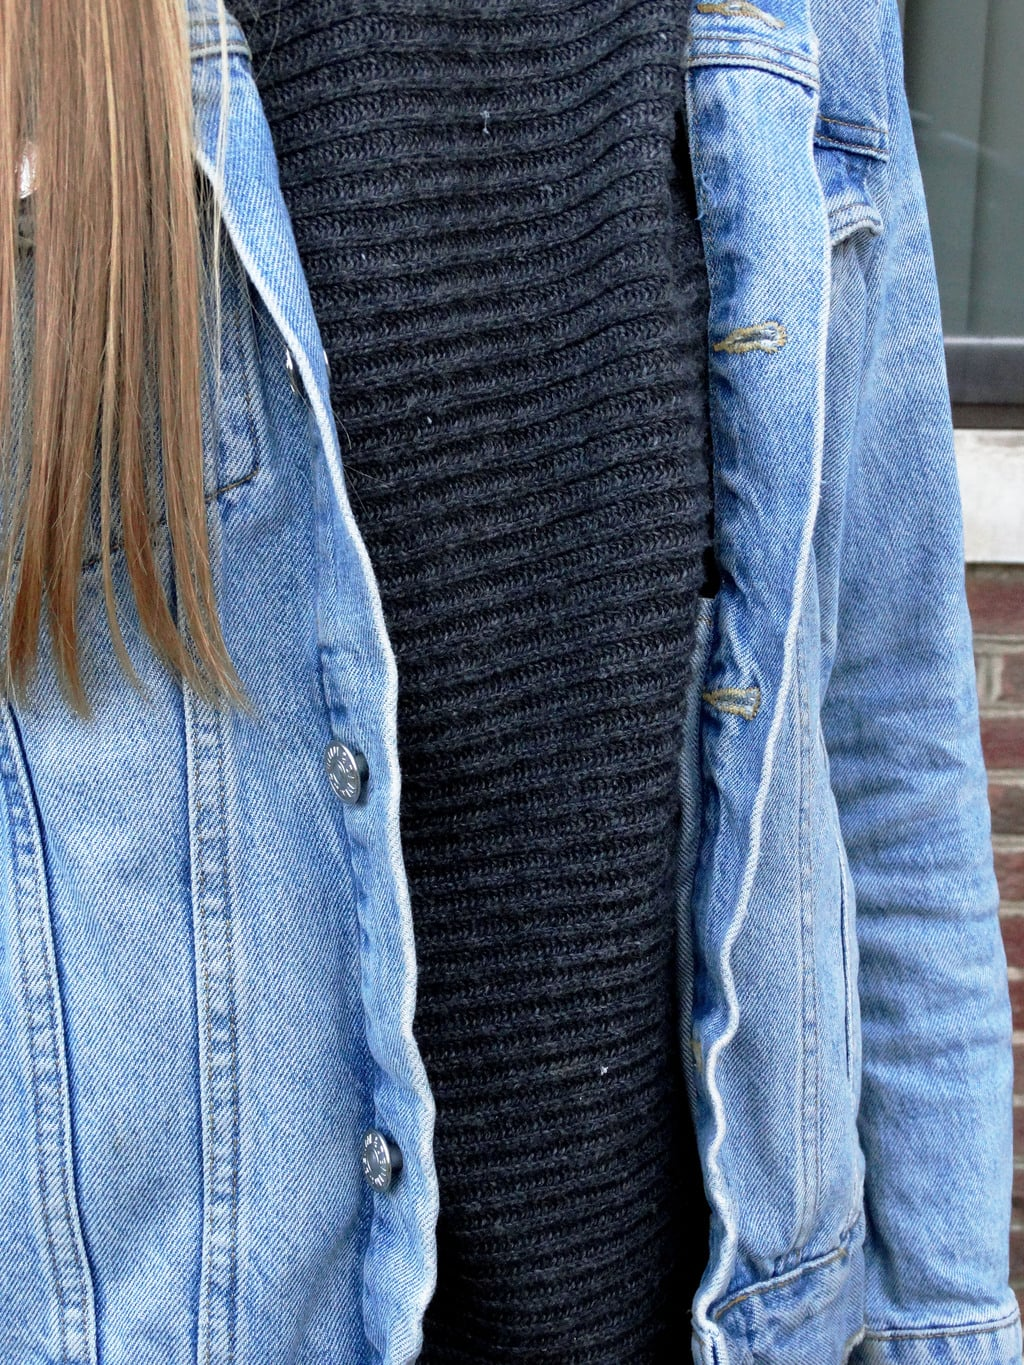 A West Virginia student wears a baggy ribbed cotton turtleneck grey sweater with a light-wash distressed denim jacket.